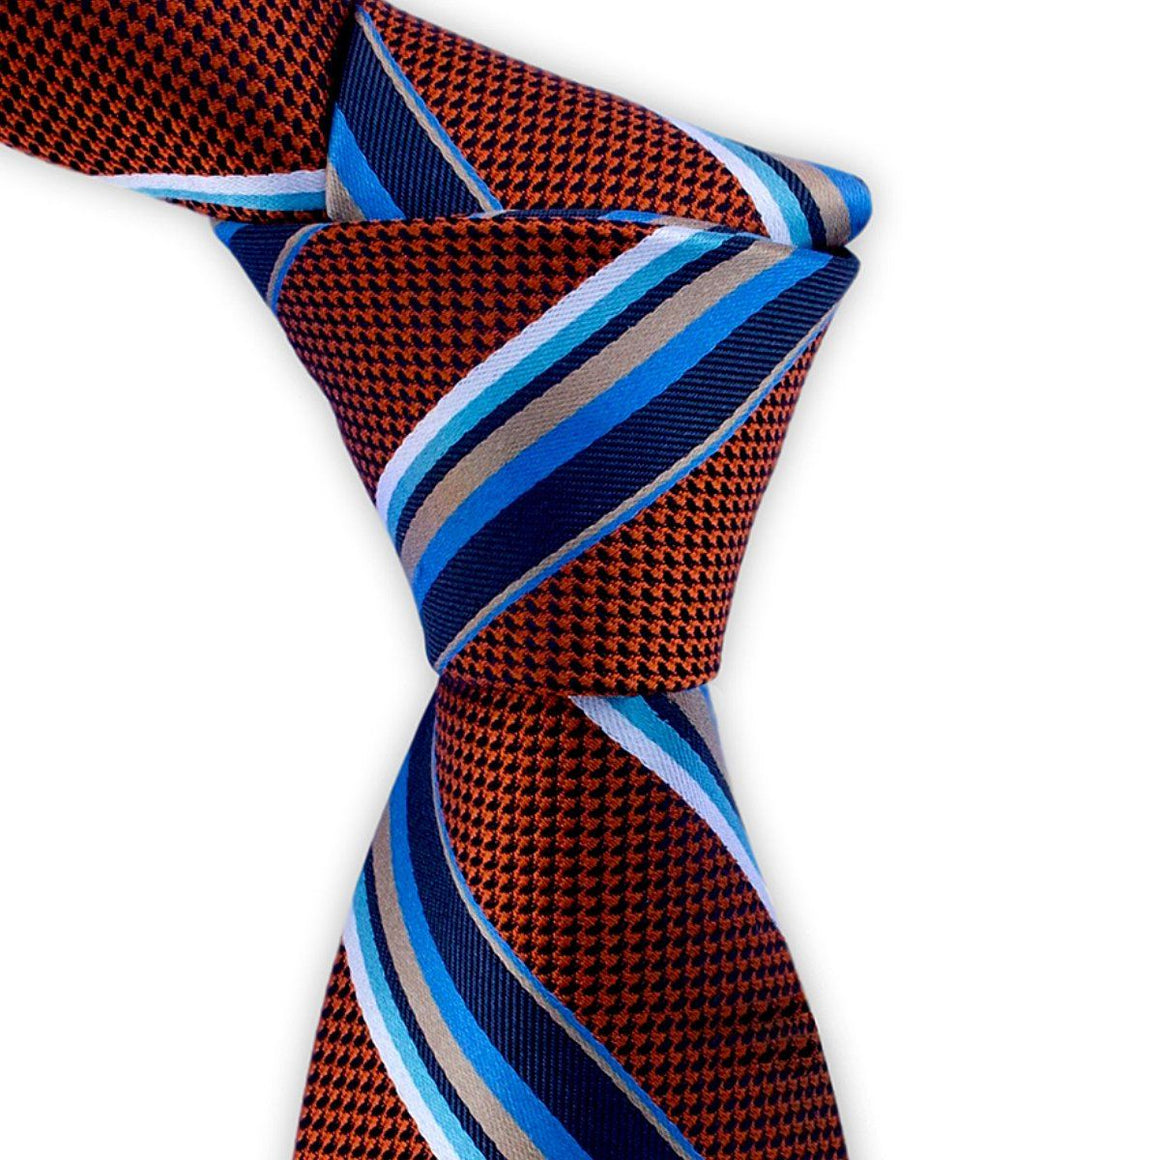 Jacob - TieThis Neckwear and Accessories and TieThis.com